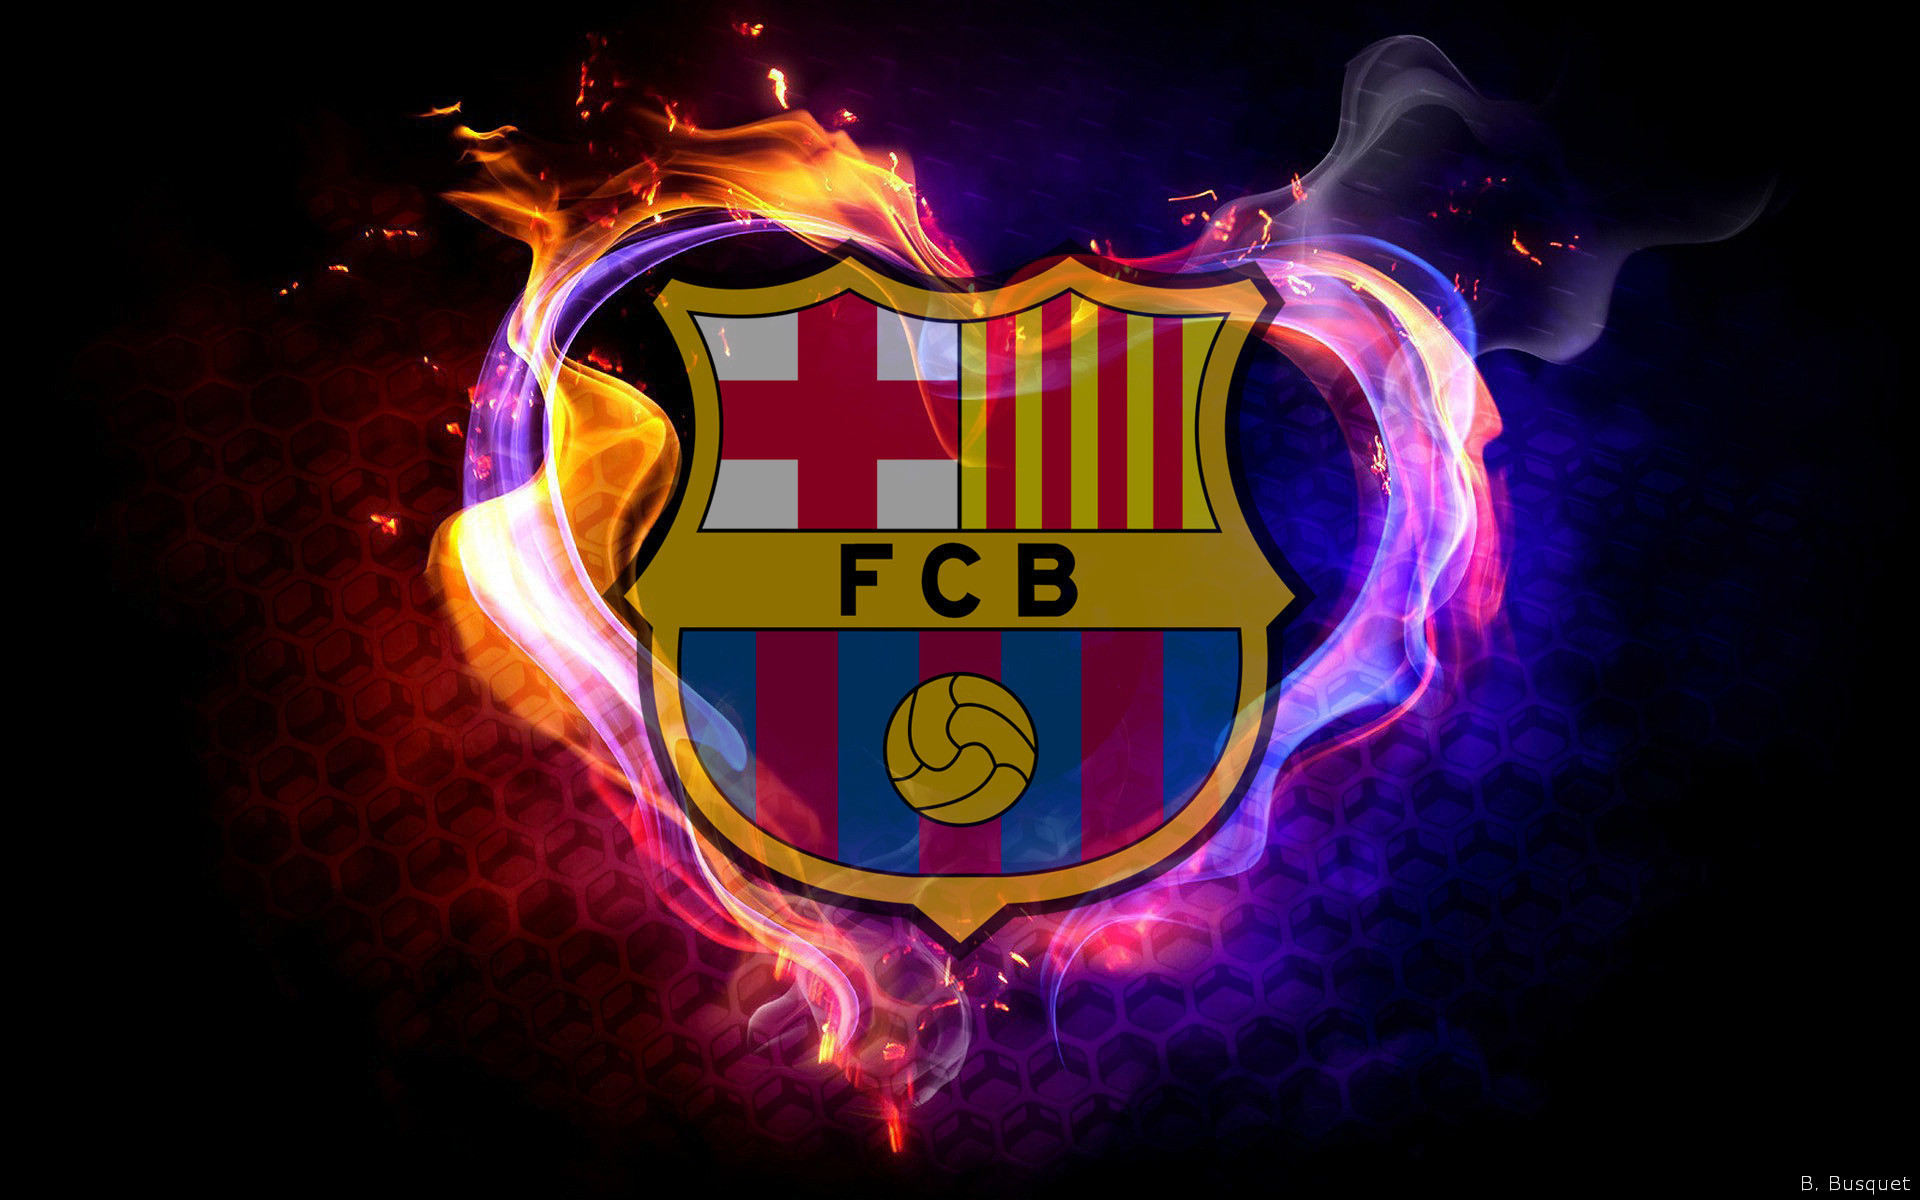 FC Barcelona wallpaper with flames.